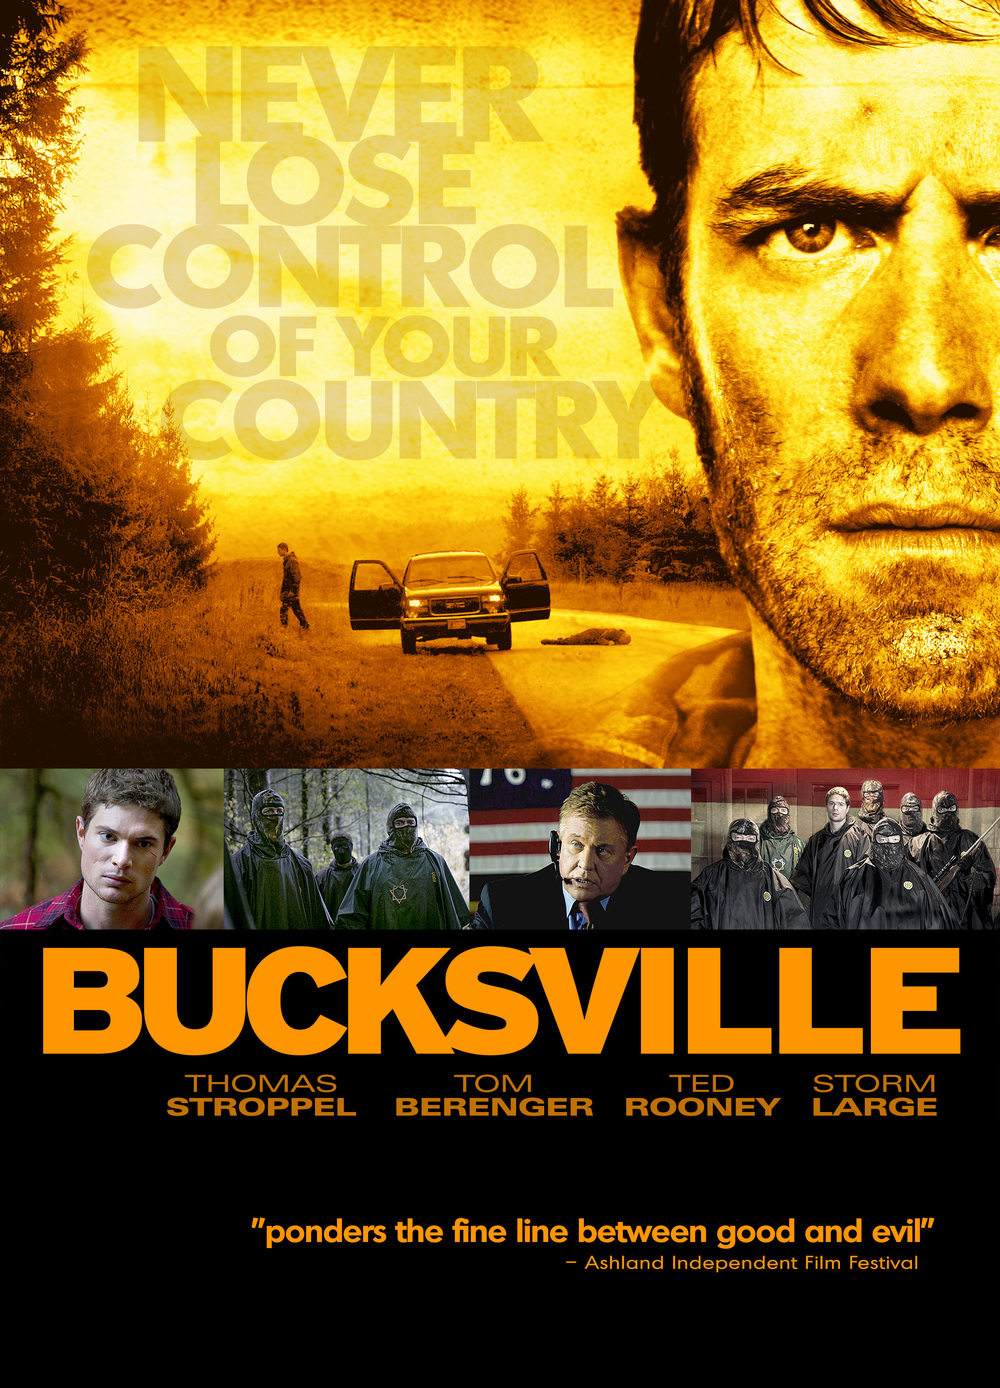 Bucksville<br>Dir: Chel White<br>Studio: Limbocker Studios<br>Role: VO and FX Editing